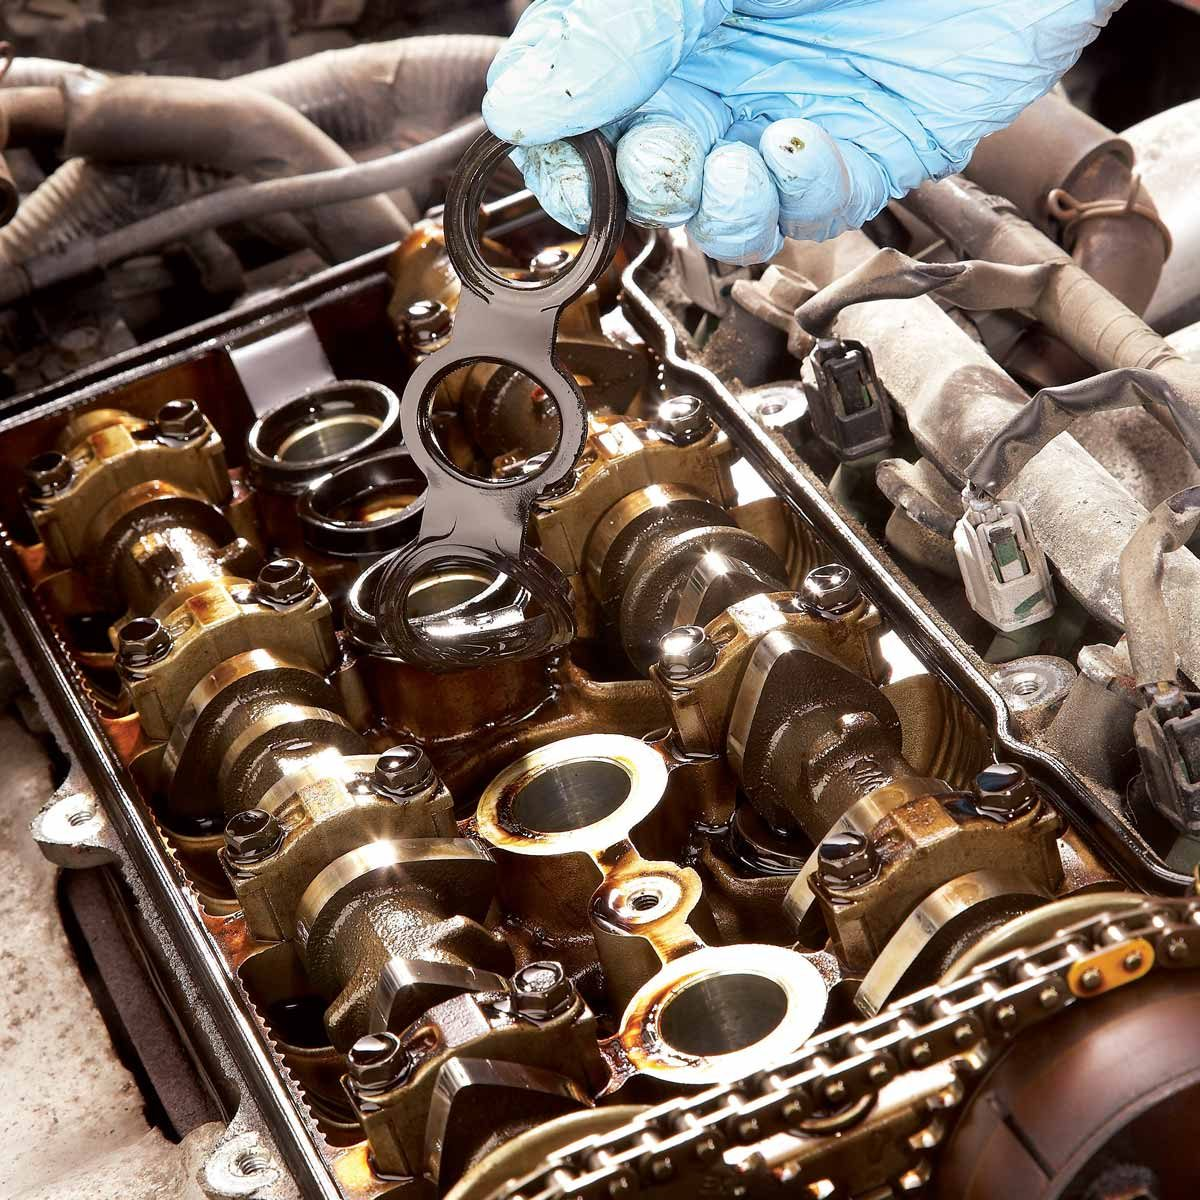 100 Car Maintenance Tasks You Can Do on Your Own The